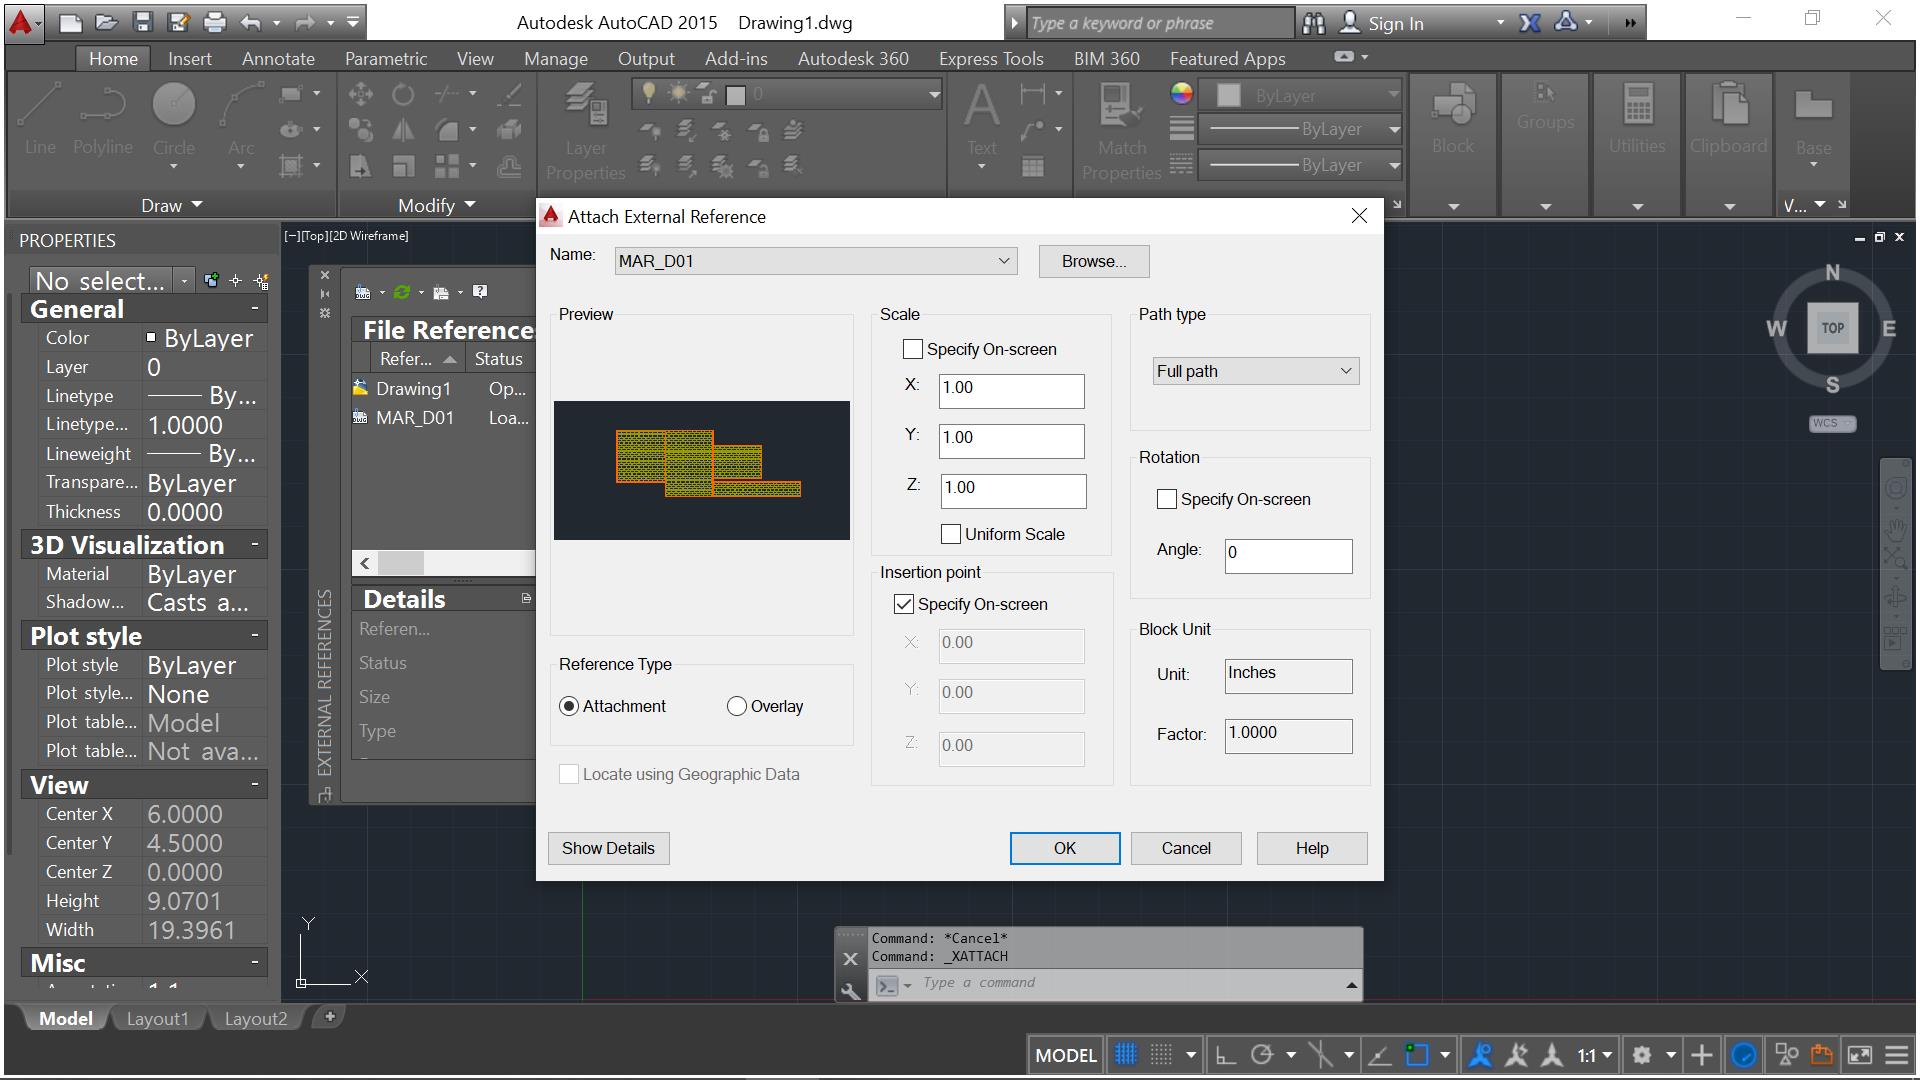 Attach Xref file to Autocad